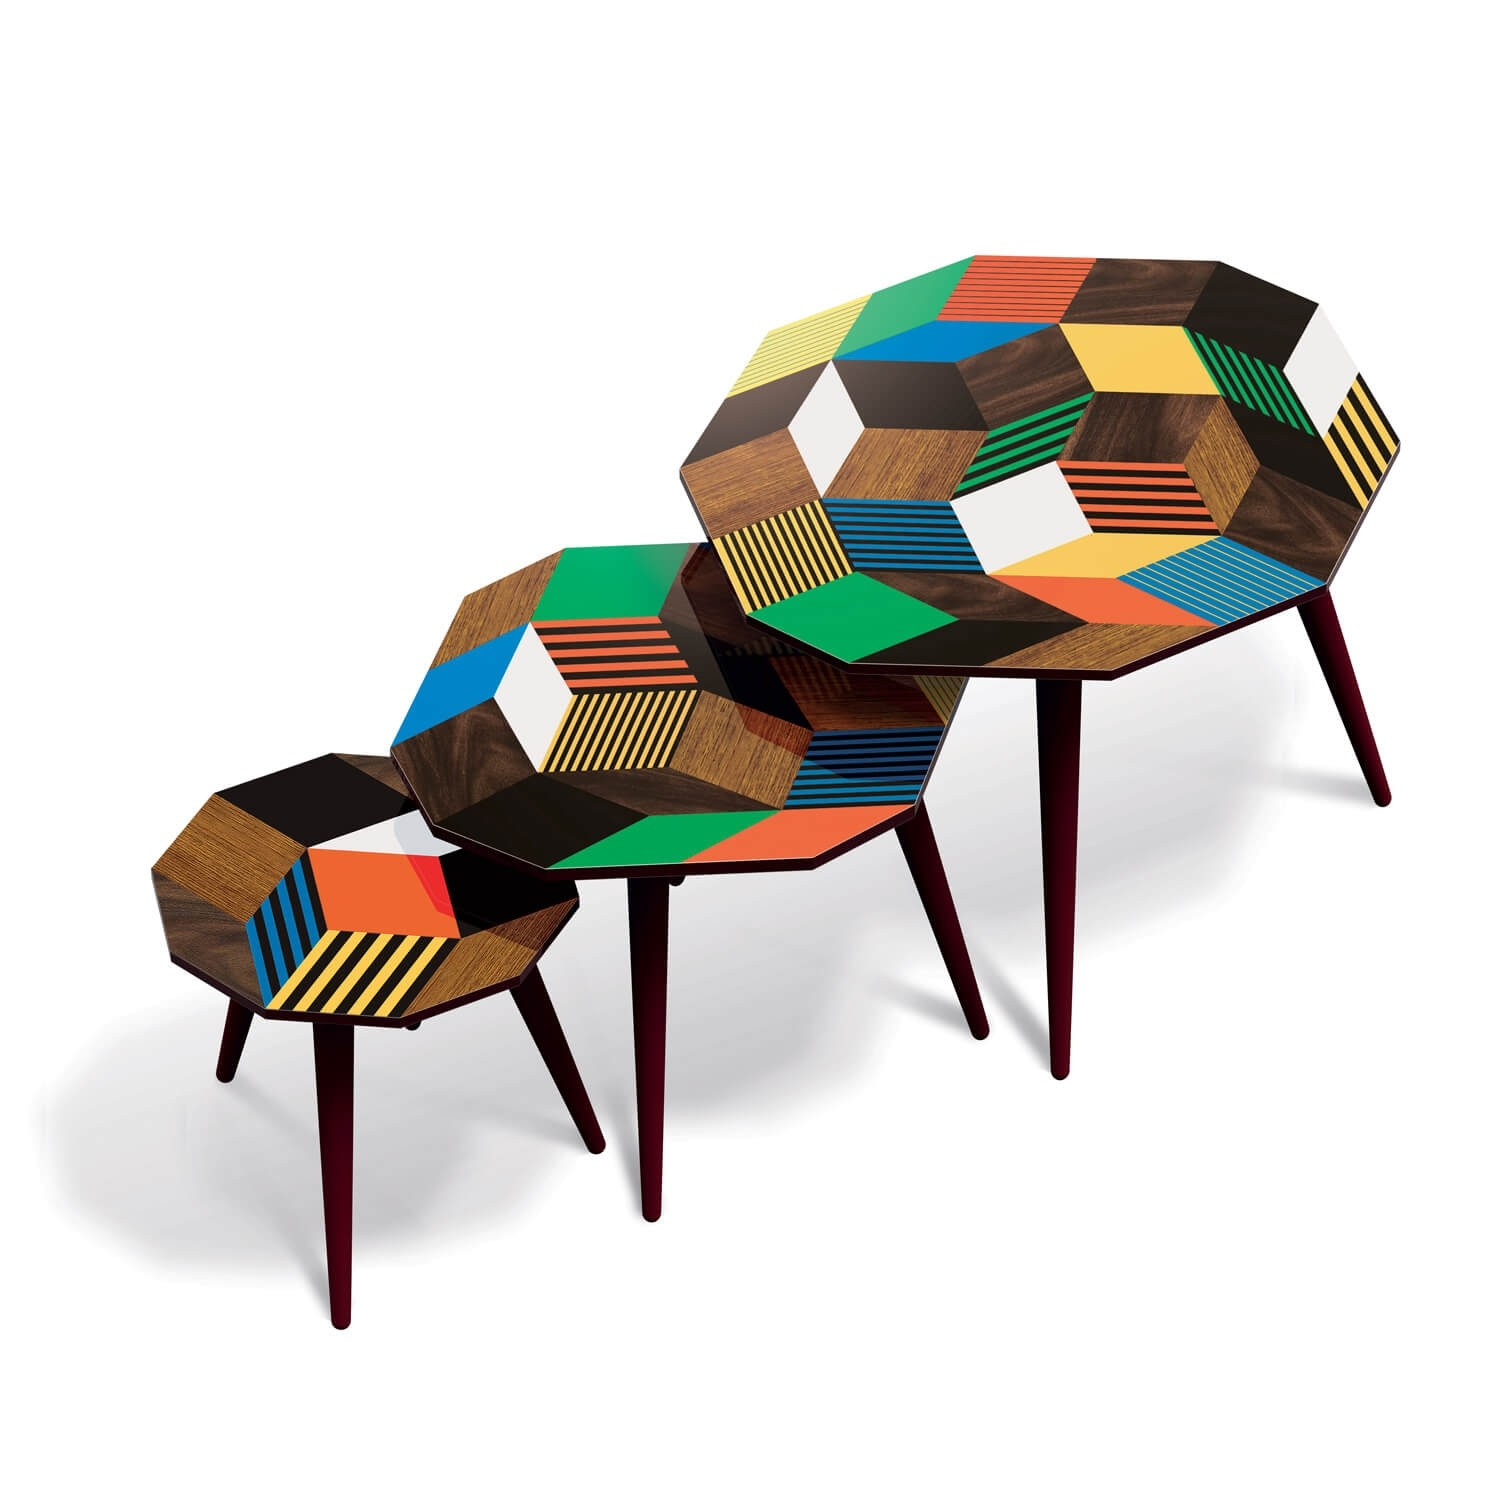 Tables basses et d'appoints gigognes, motif Penrose Crazy Wood, motif dessiné par IchetKar pour les éditions Bazartherapy